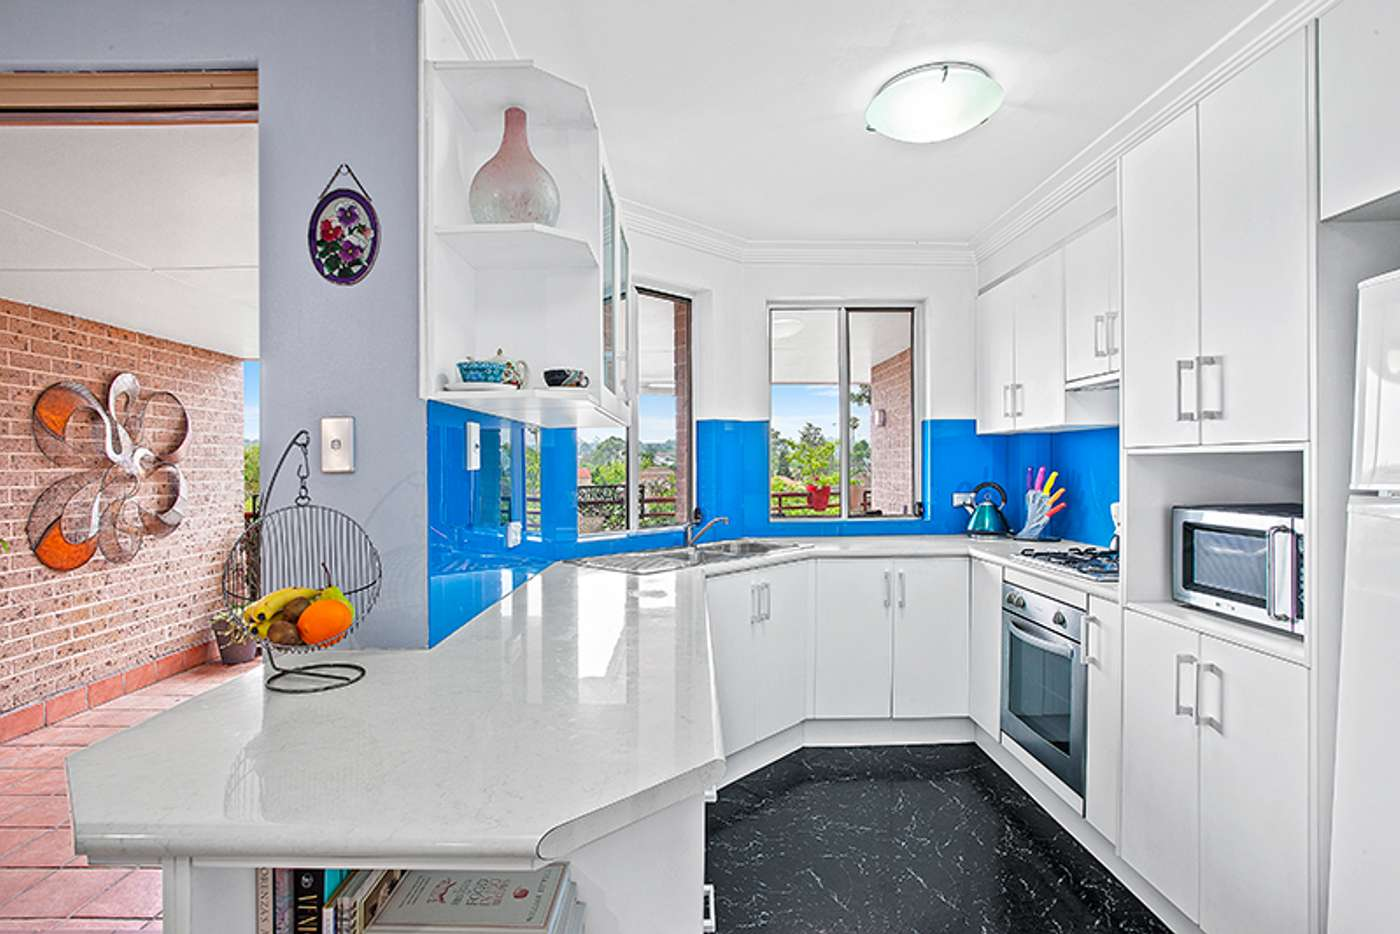 Main view of Homely apartment listing, 9/39-41 Victoria Road, Parramatta NSW 2150